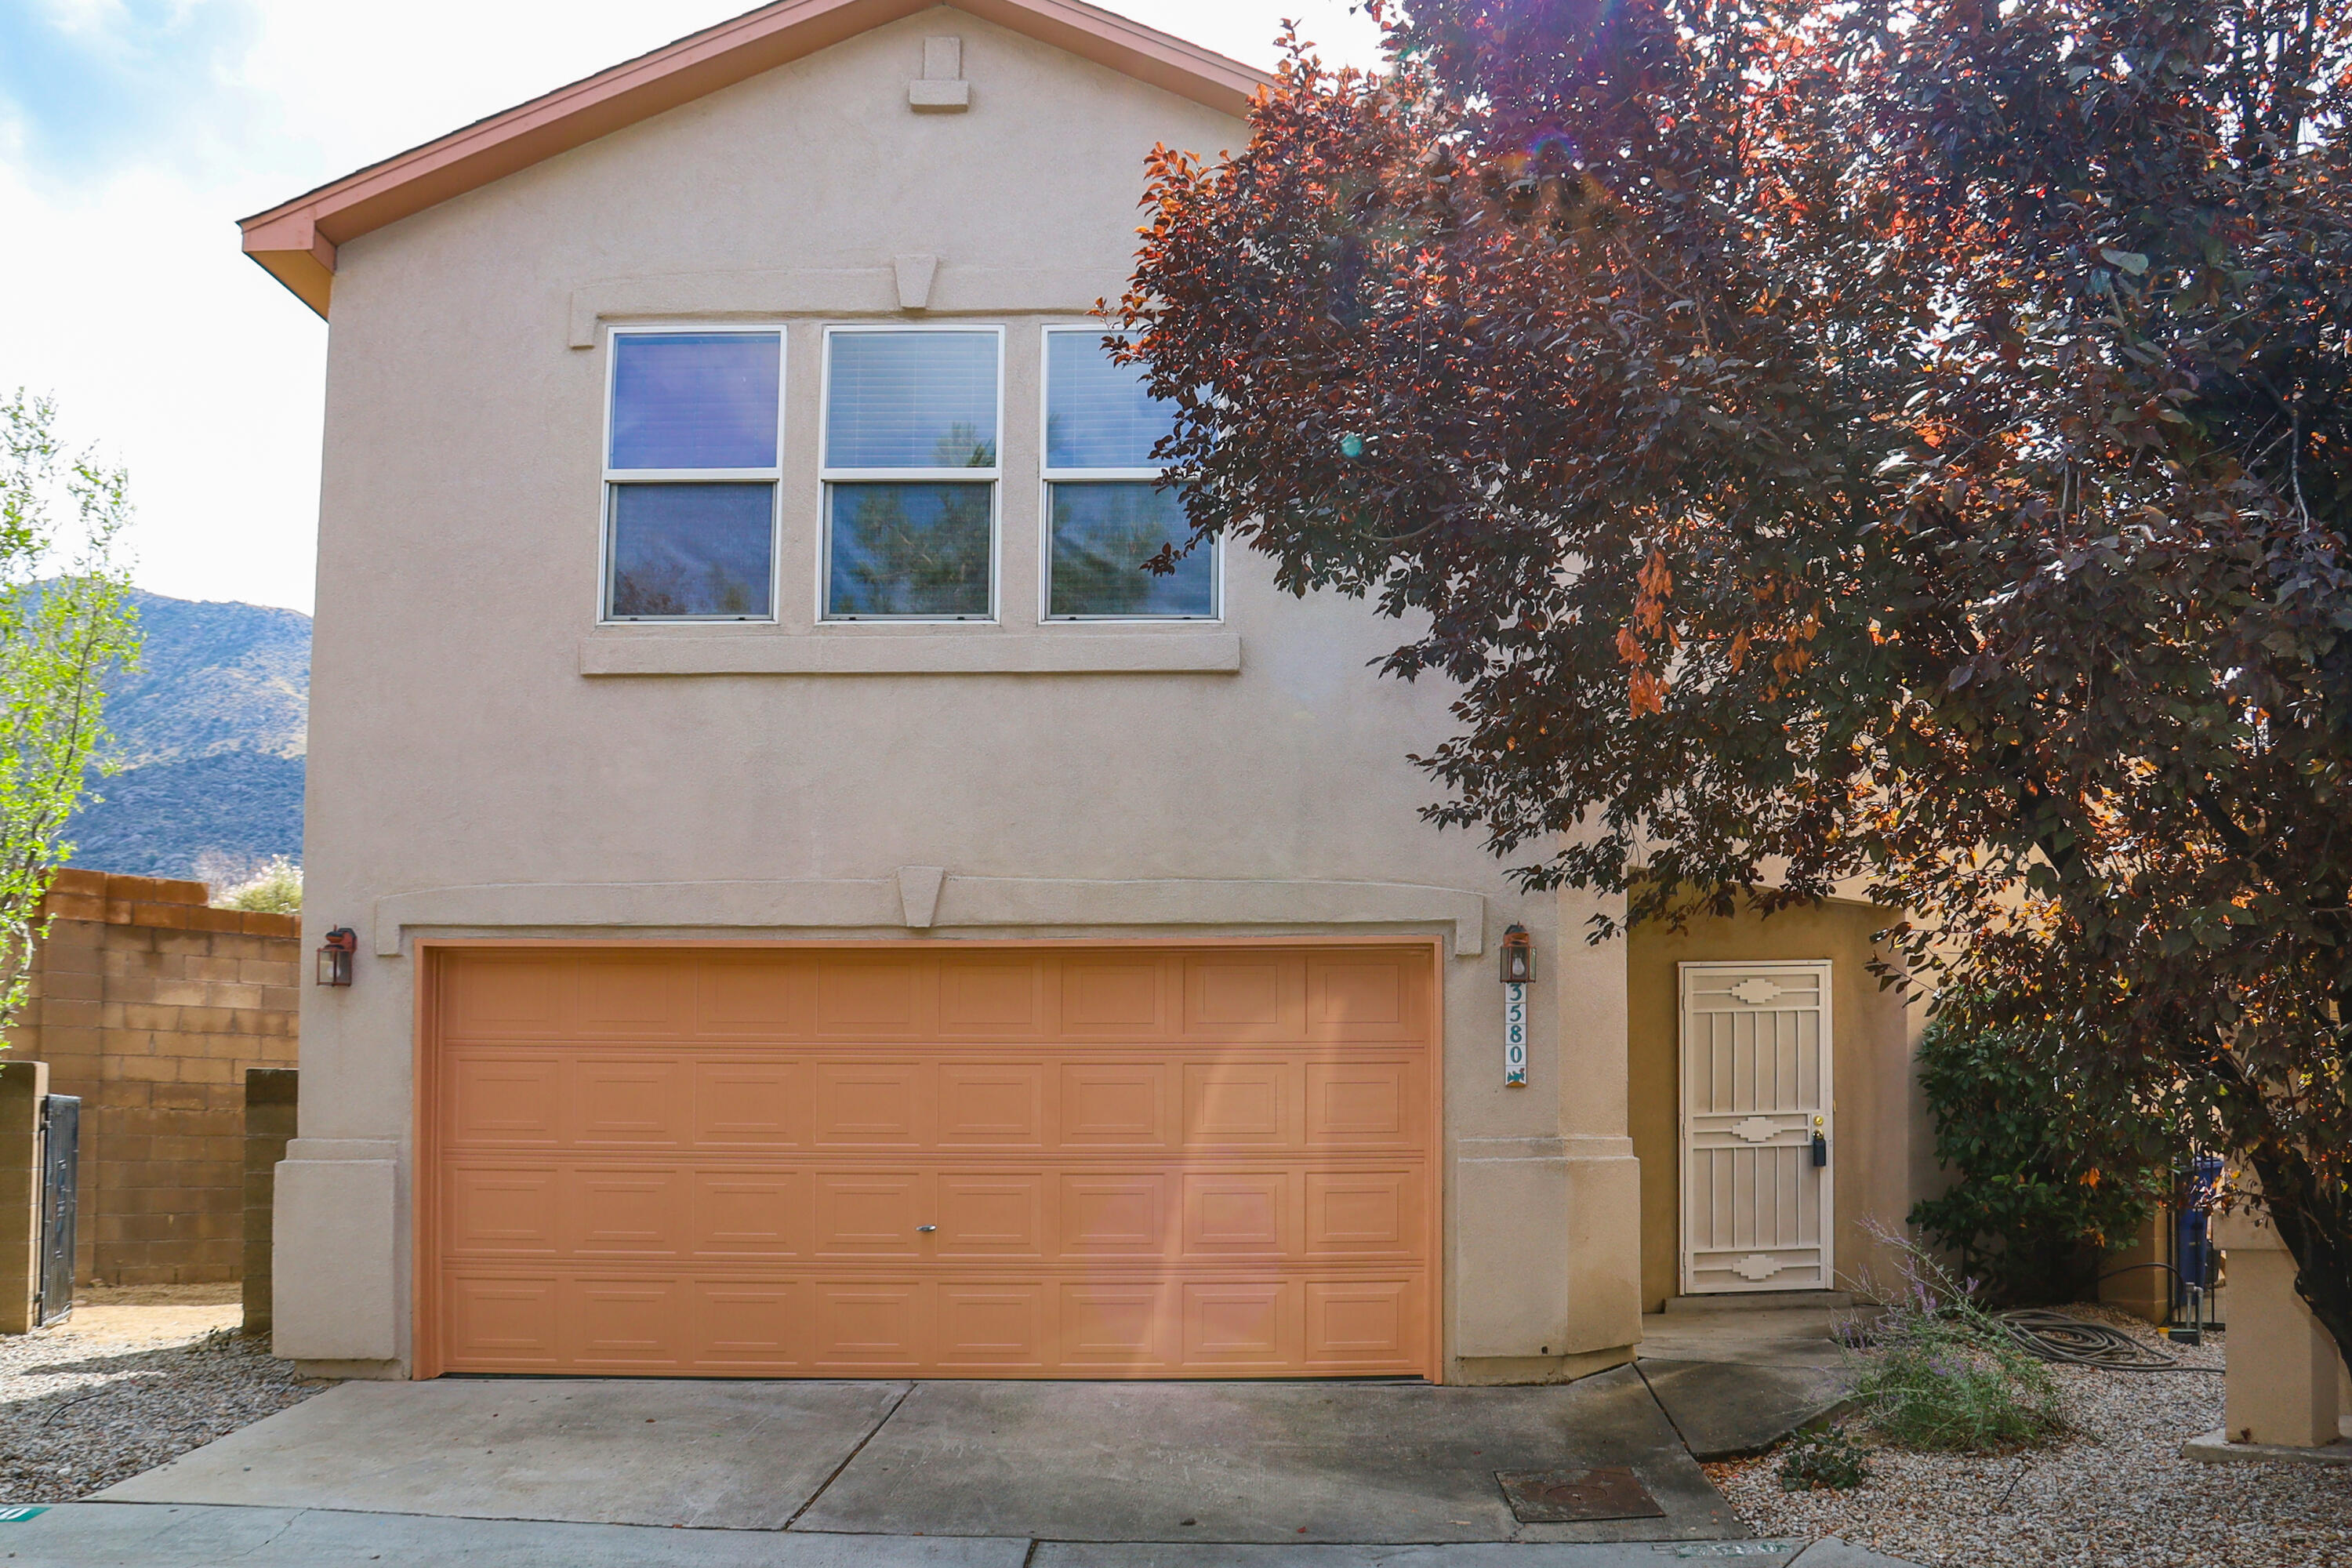 Low maintenance living on the skirts of the foothills.  Open floor plan features 2 living areas and 3 spacious bedrooms.  Kitchen offers plenty of storage and work space.  Minimum yard work.  Easy access to Tramway & I-40.  Immaculate condition.